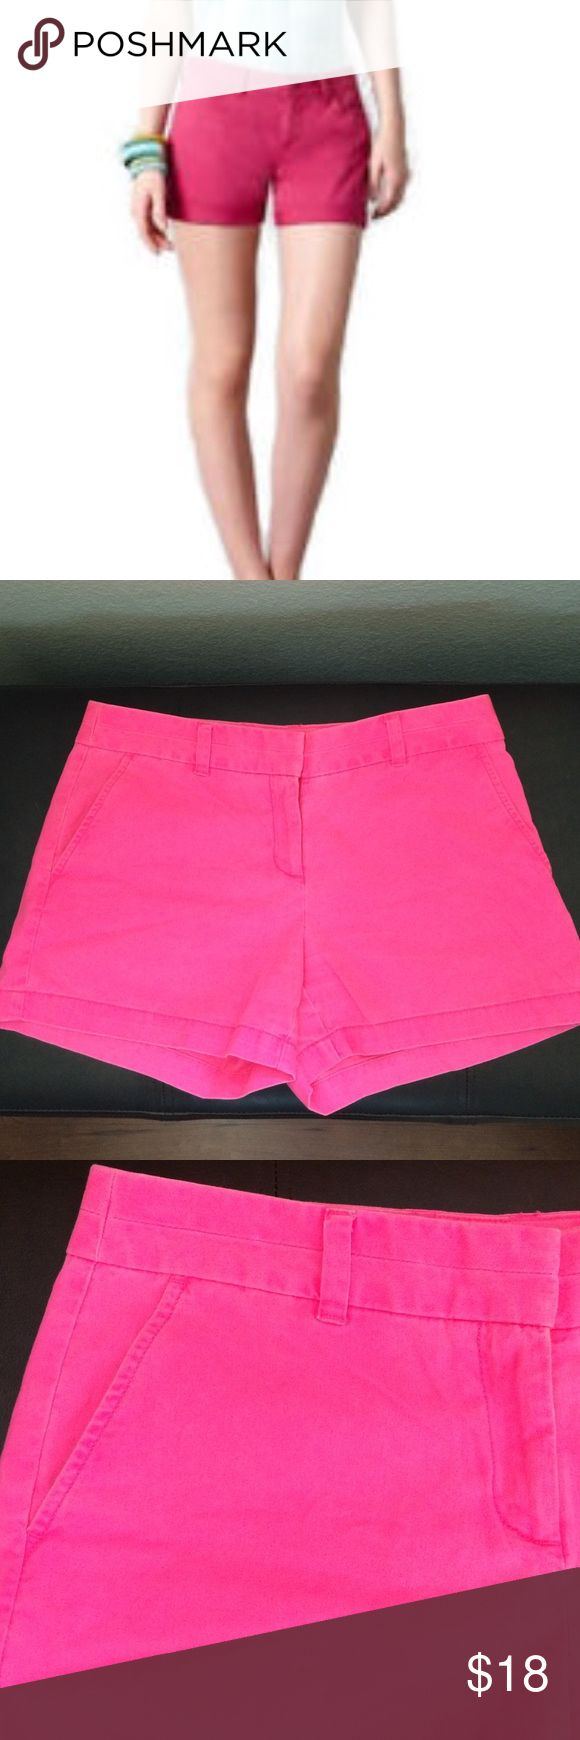 Ann Taylor LOFT Hot Pink Shorts A little more bright hot pink than the pictures show. Good condition, some fading. Size 2 original. LOFT Shorts